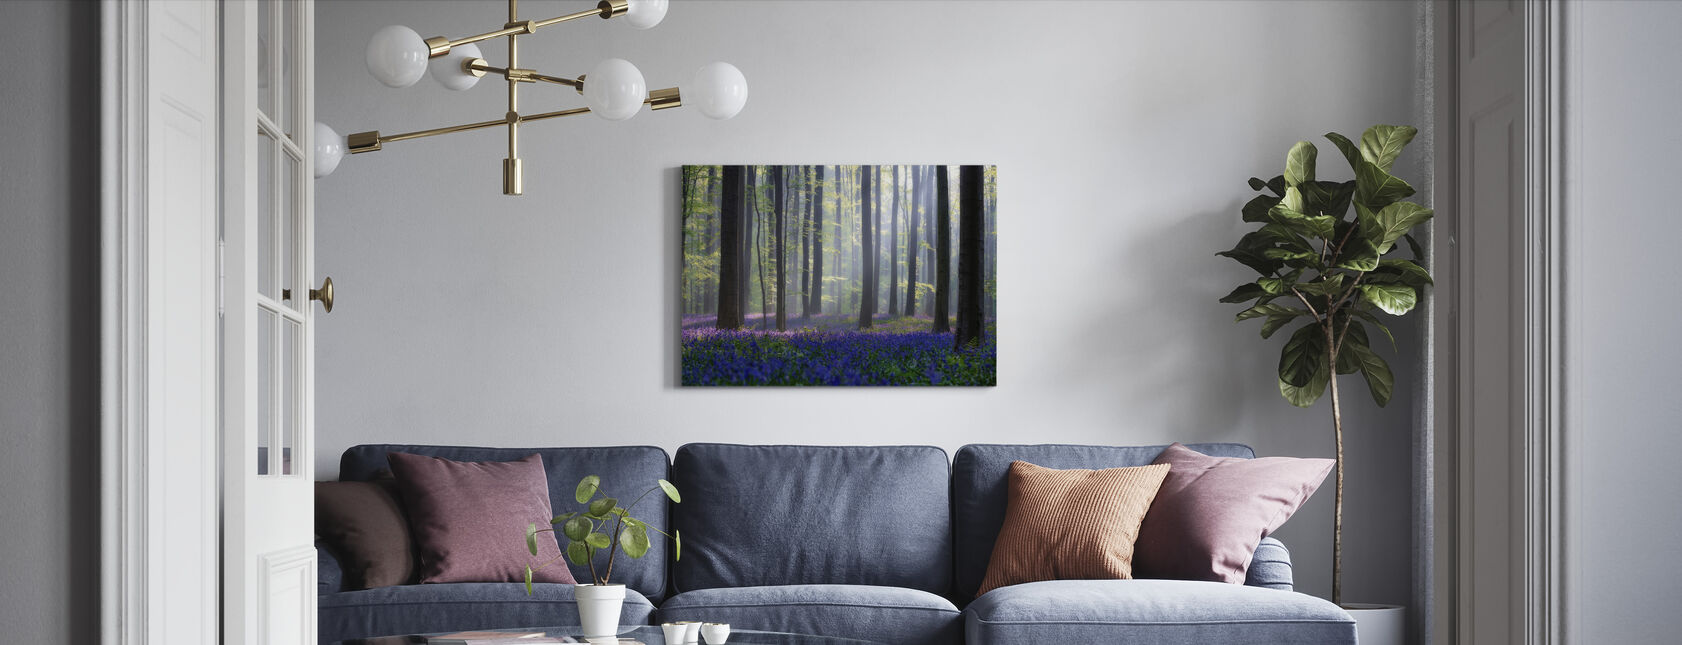 Bluebells - Canvas print - Living Room